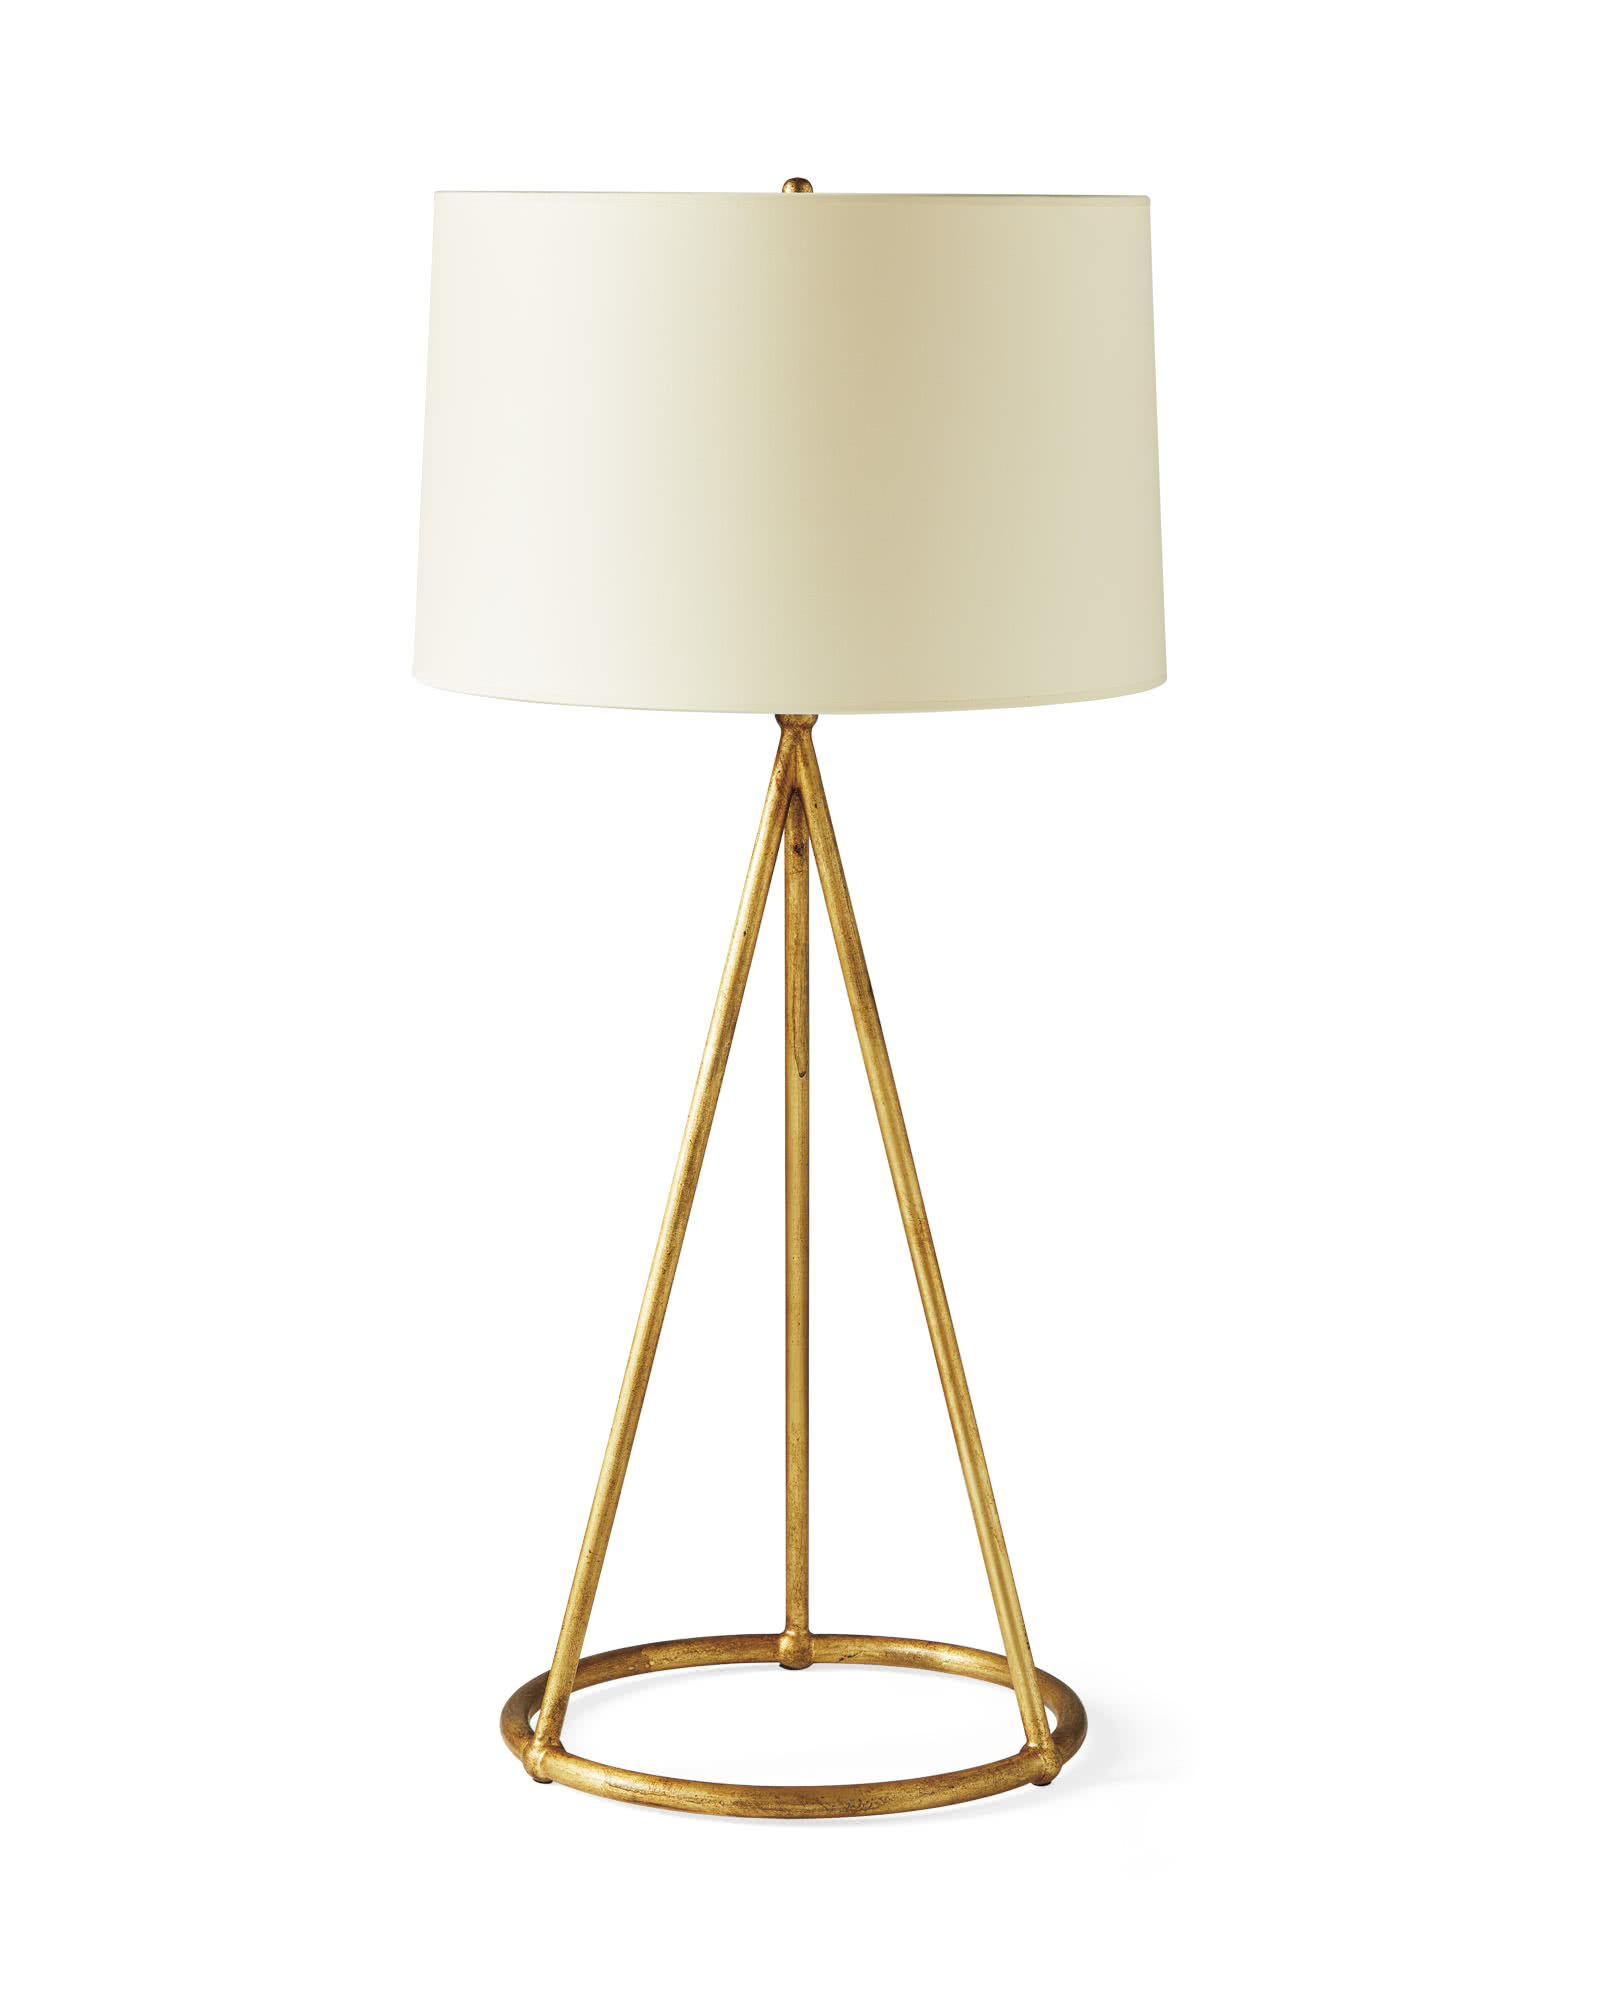 Greenwood Table Lamp,